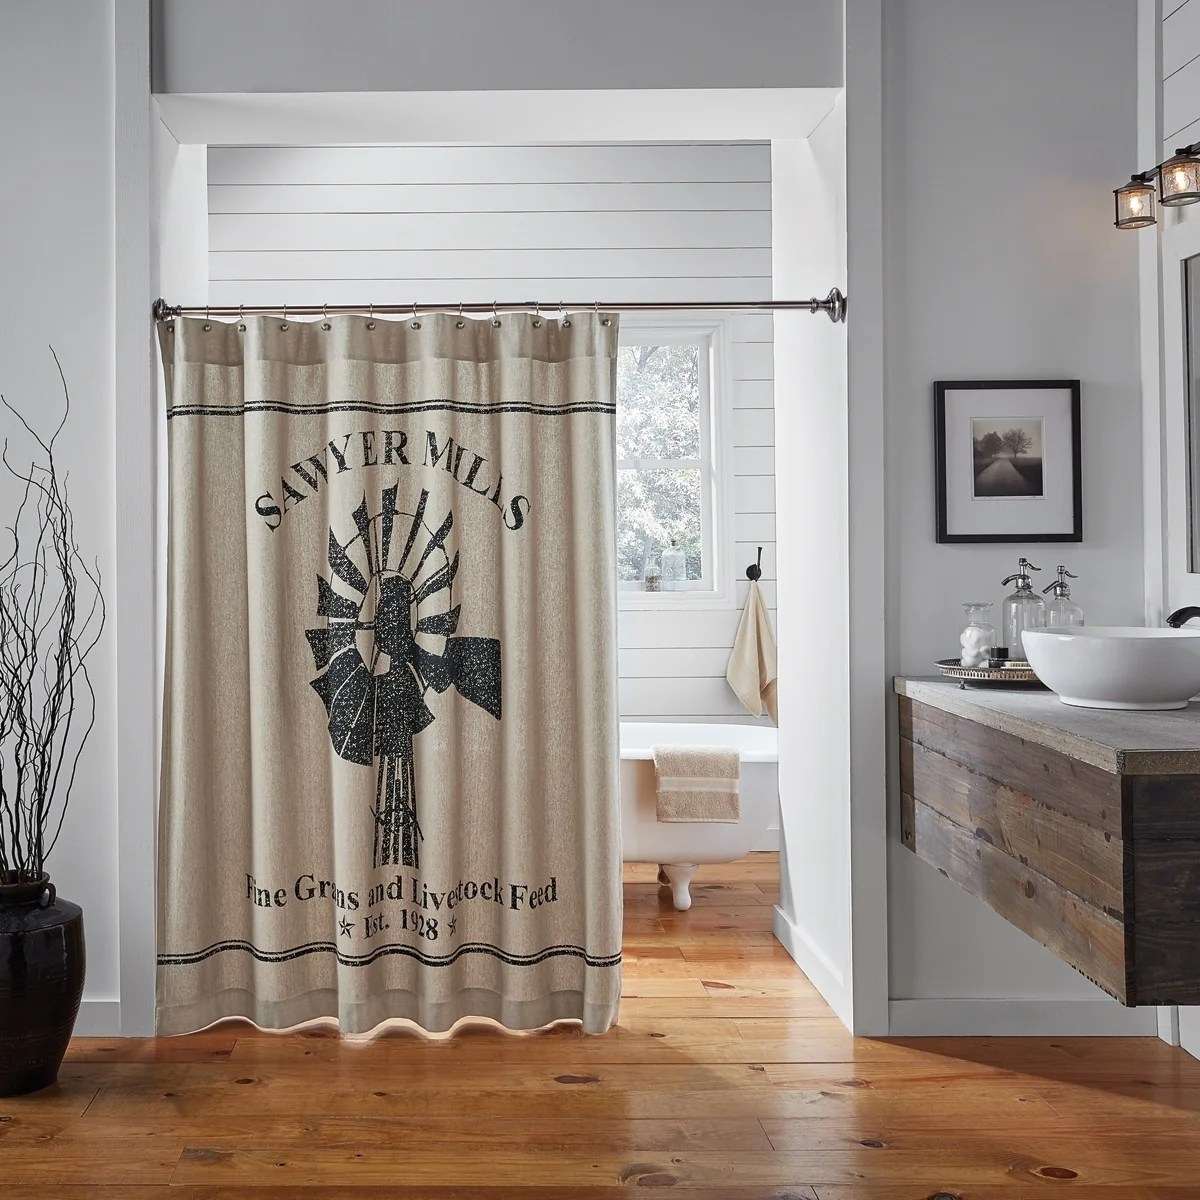 Bathroom Shower Curtain Vhc Sawyer Mill Farmhouse Bath Windmill Shower Curtain